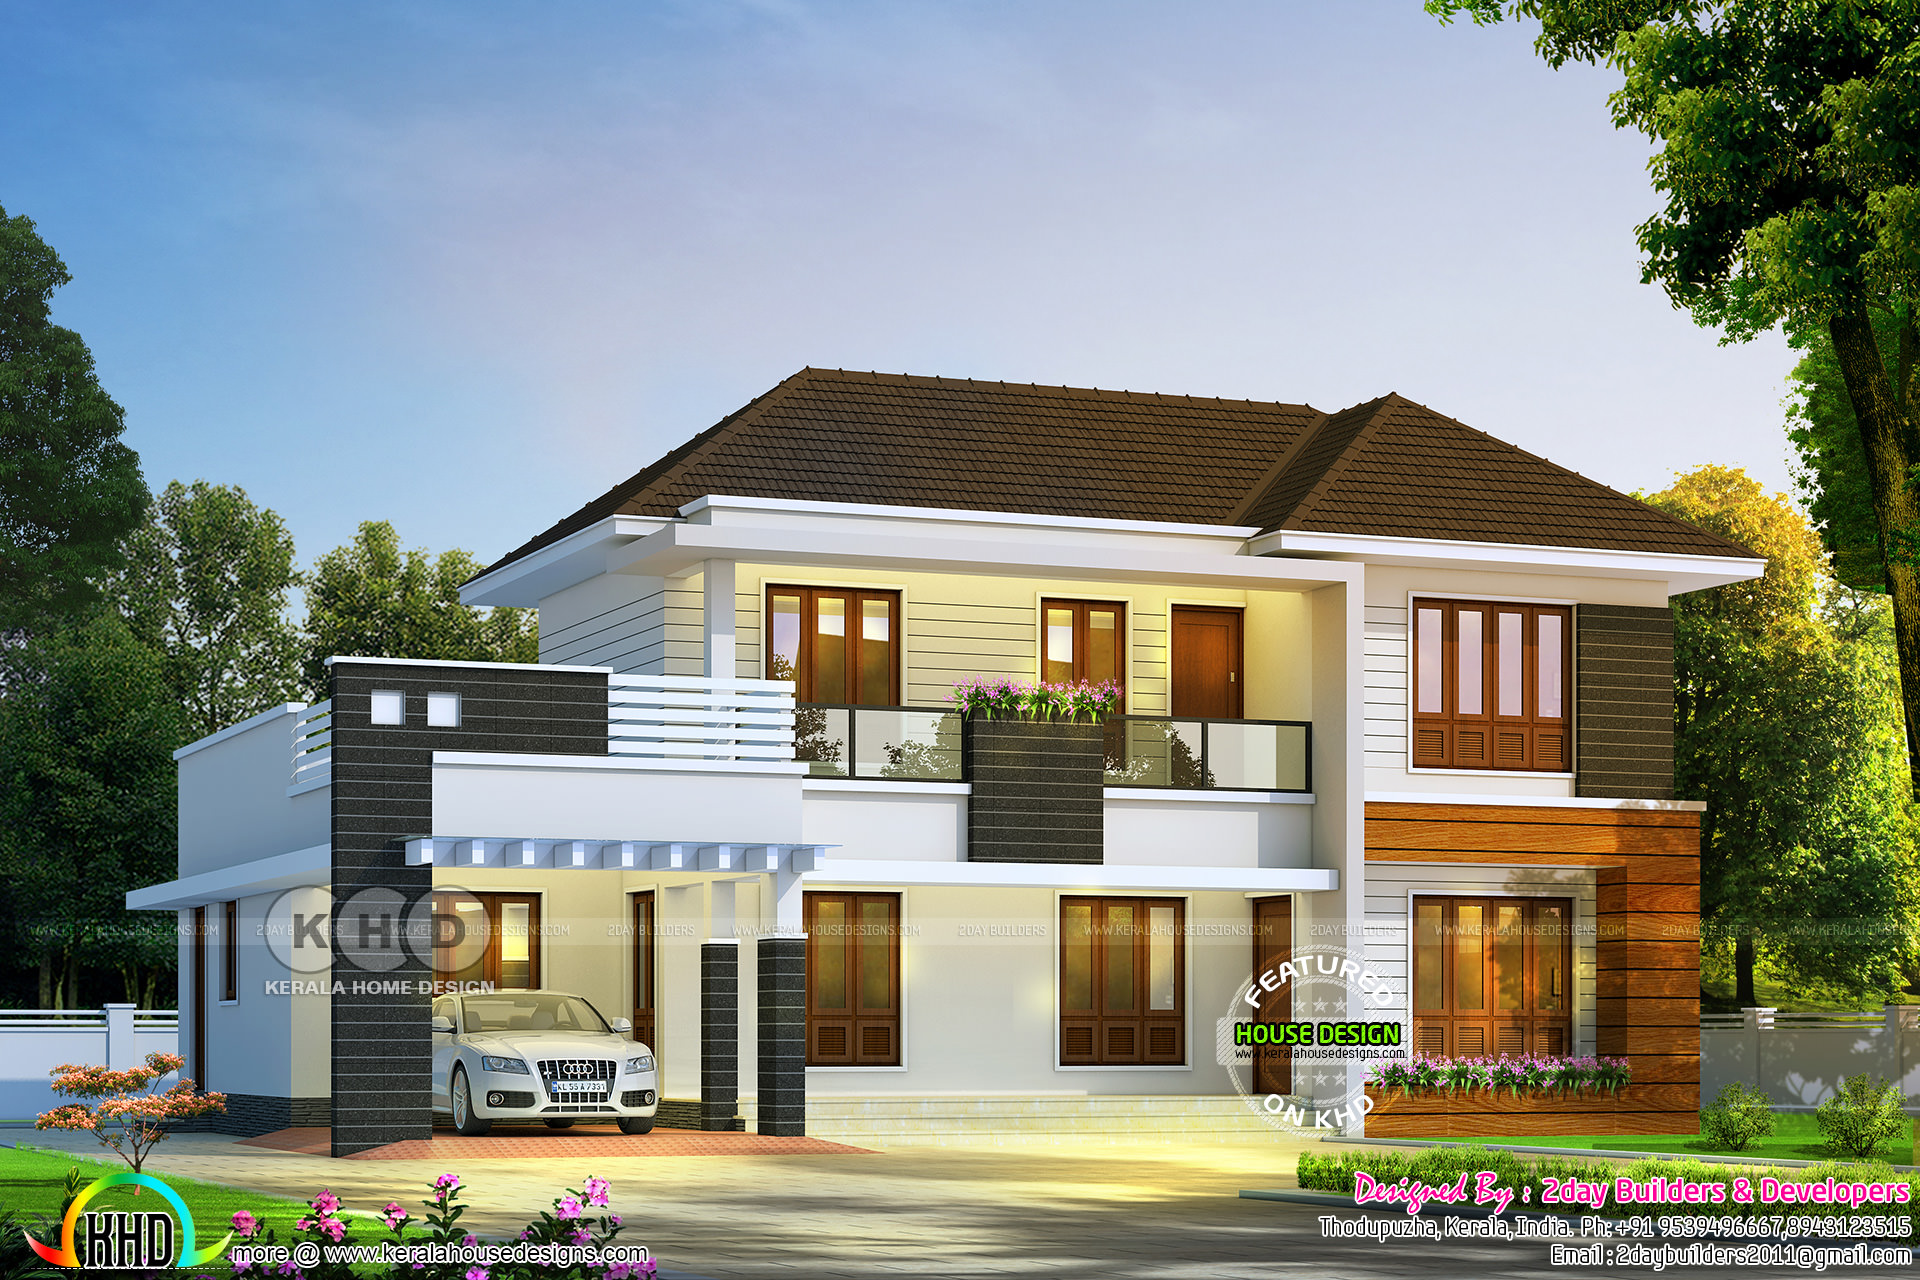 4 Bedroom Mixed Roof Home Part - 30: 4 Bedroom 2350 Square Feet Mixed Roof Villa